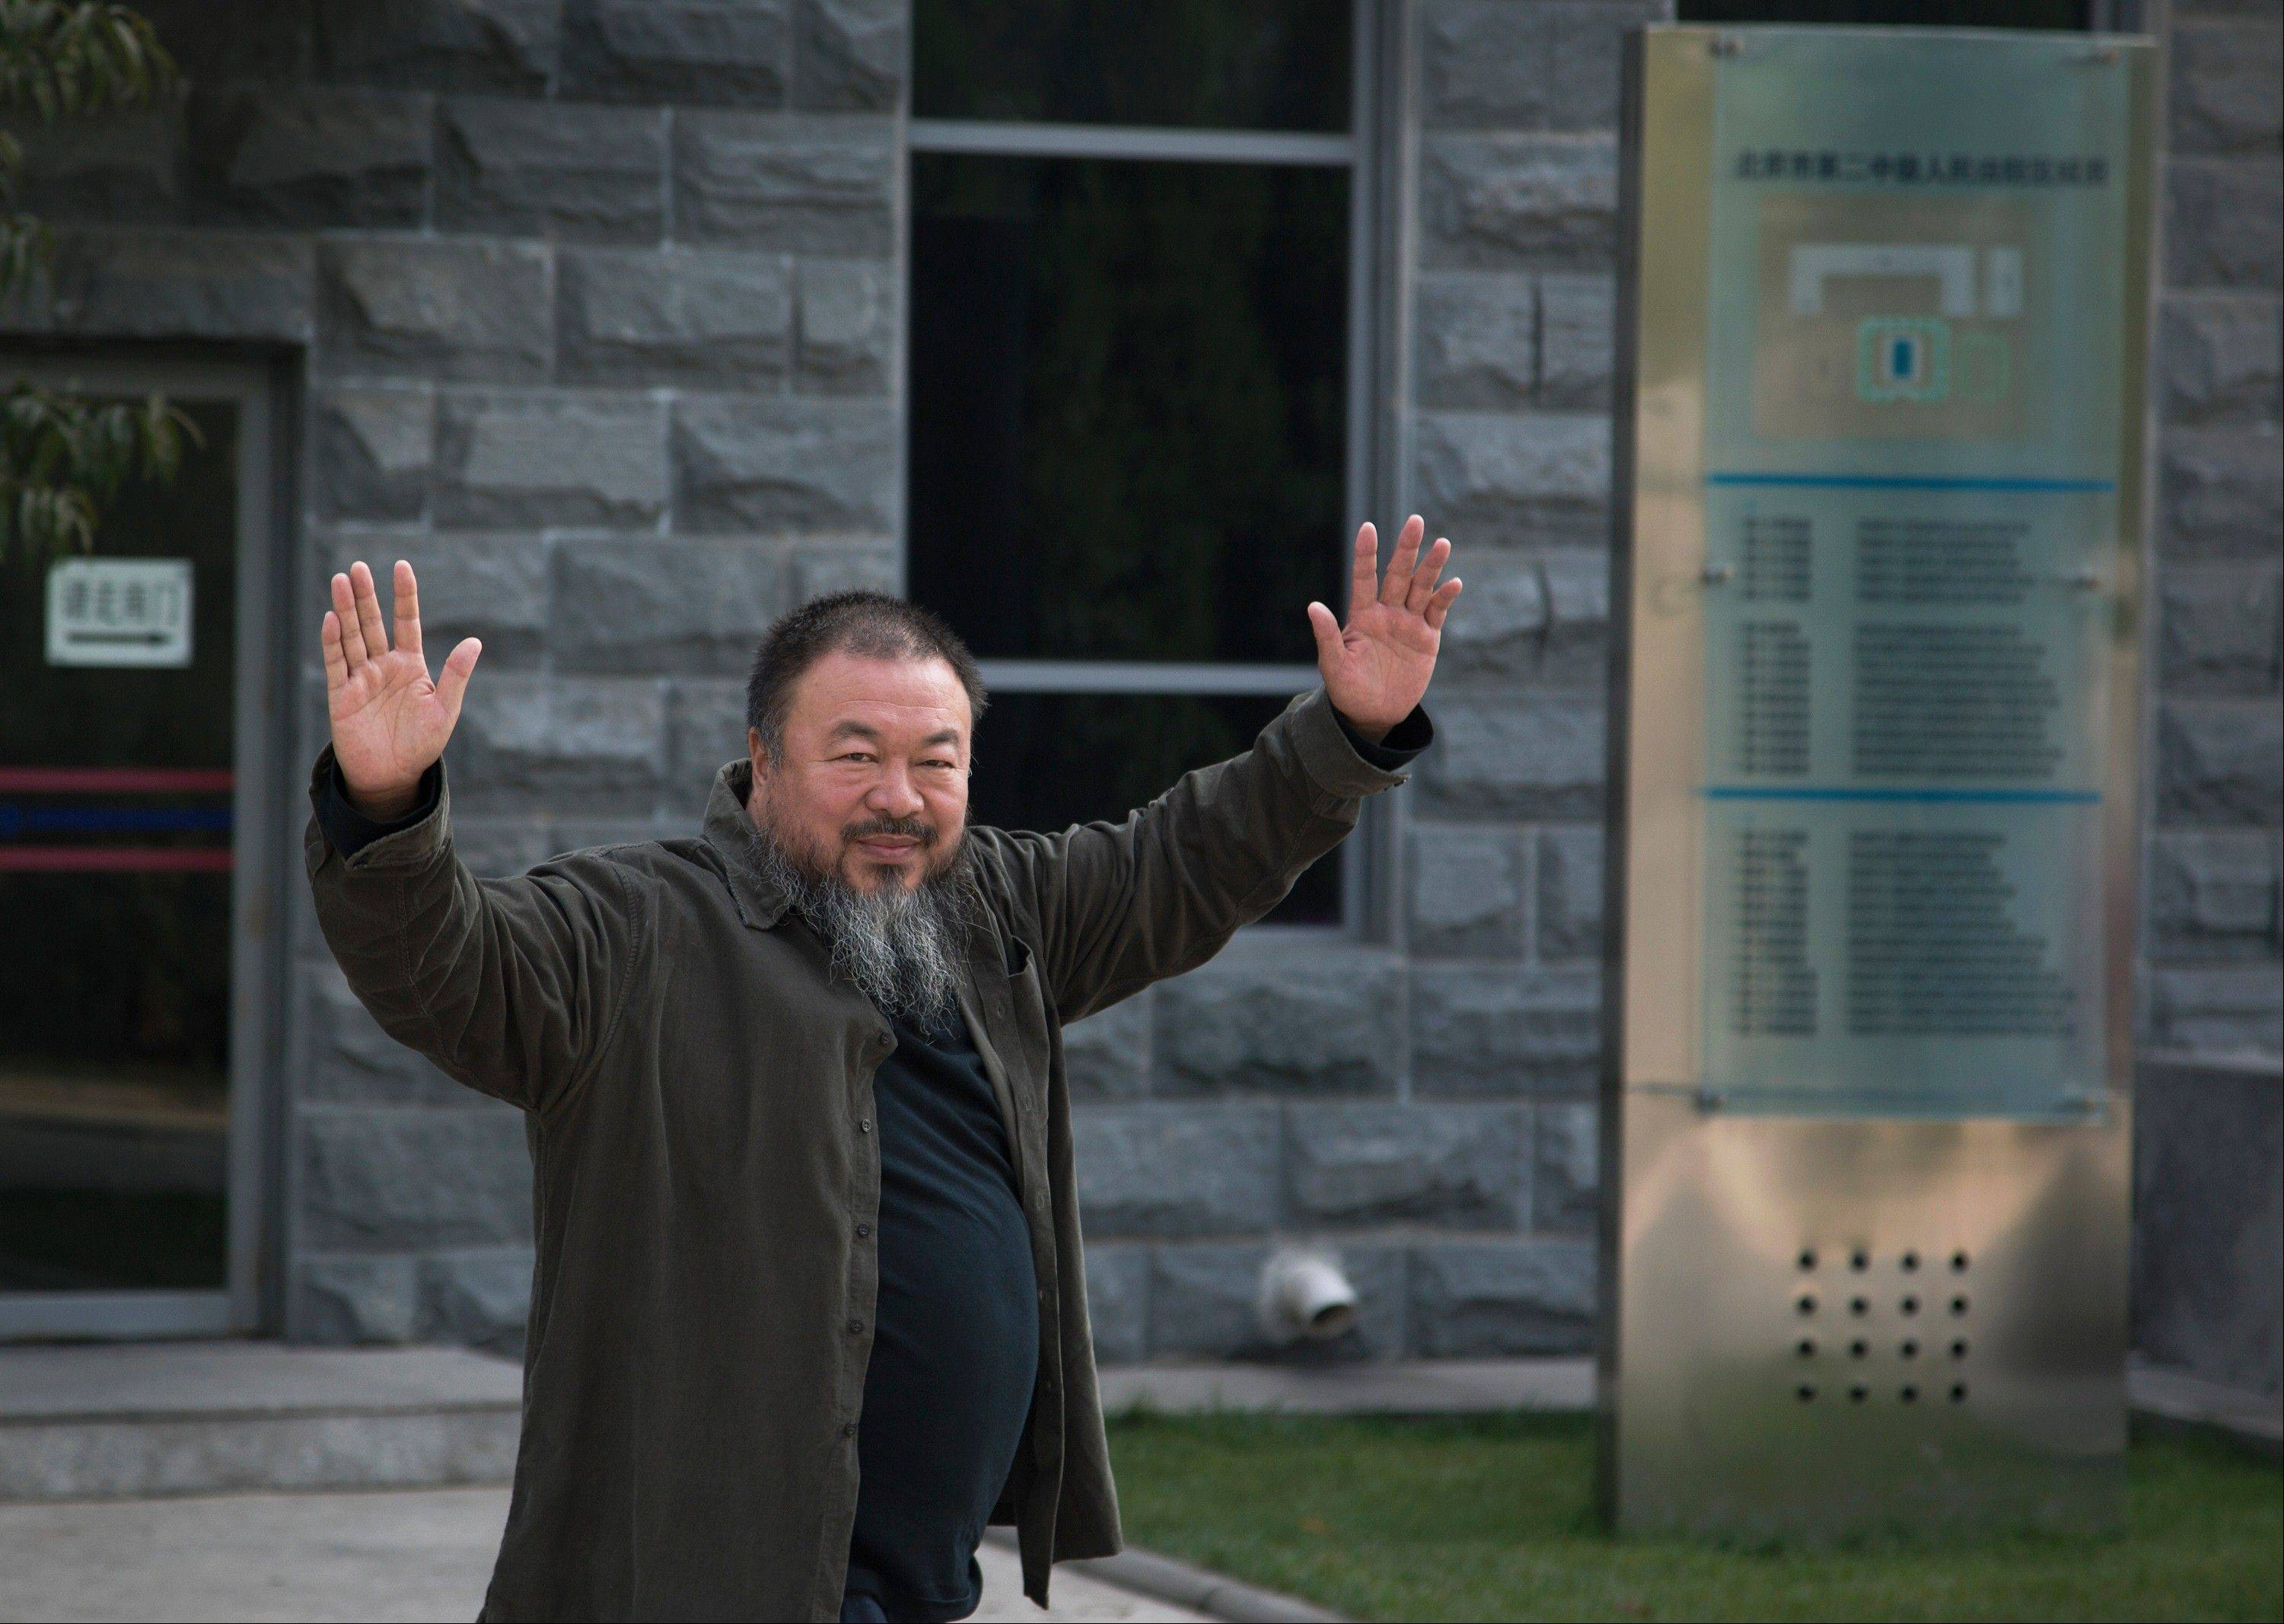 Chinese activist artist Ai Weiwei waves to the journalists as he arrives to the Beijing No. 2 People's Intermediate Court in Beijing Thursday, Sept. 27, 2012. Chinese authorities on Thursday rejected Ai's second appeal of a $2.4 million tax fine.